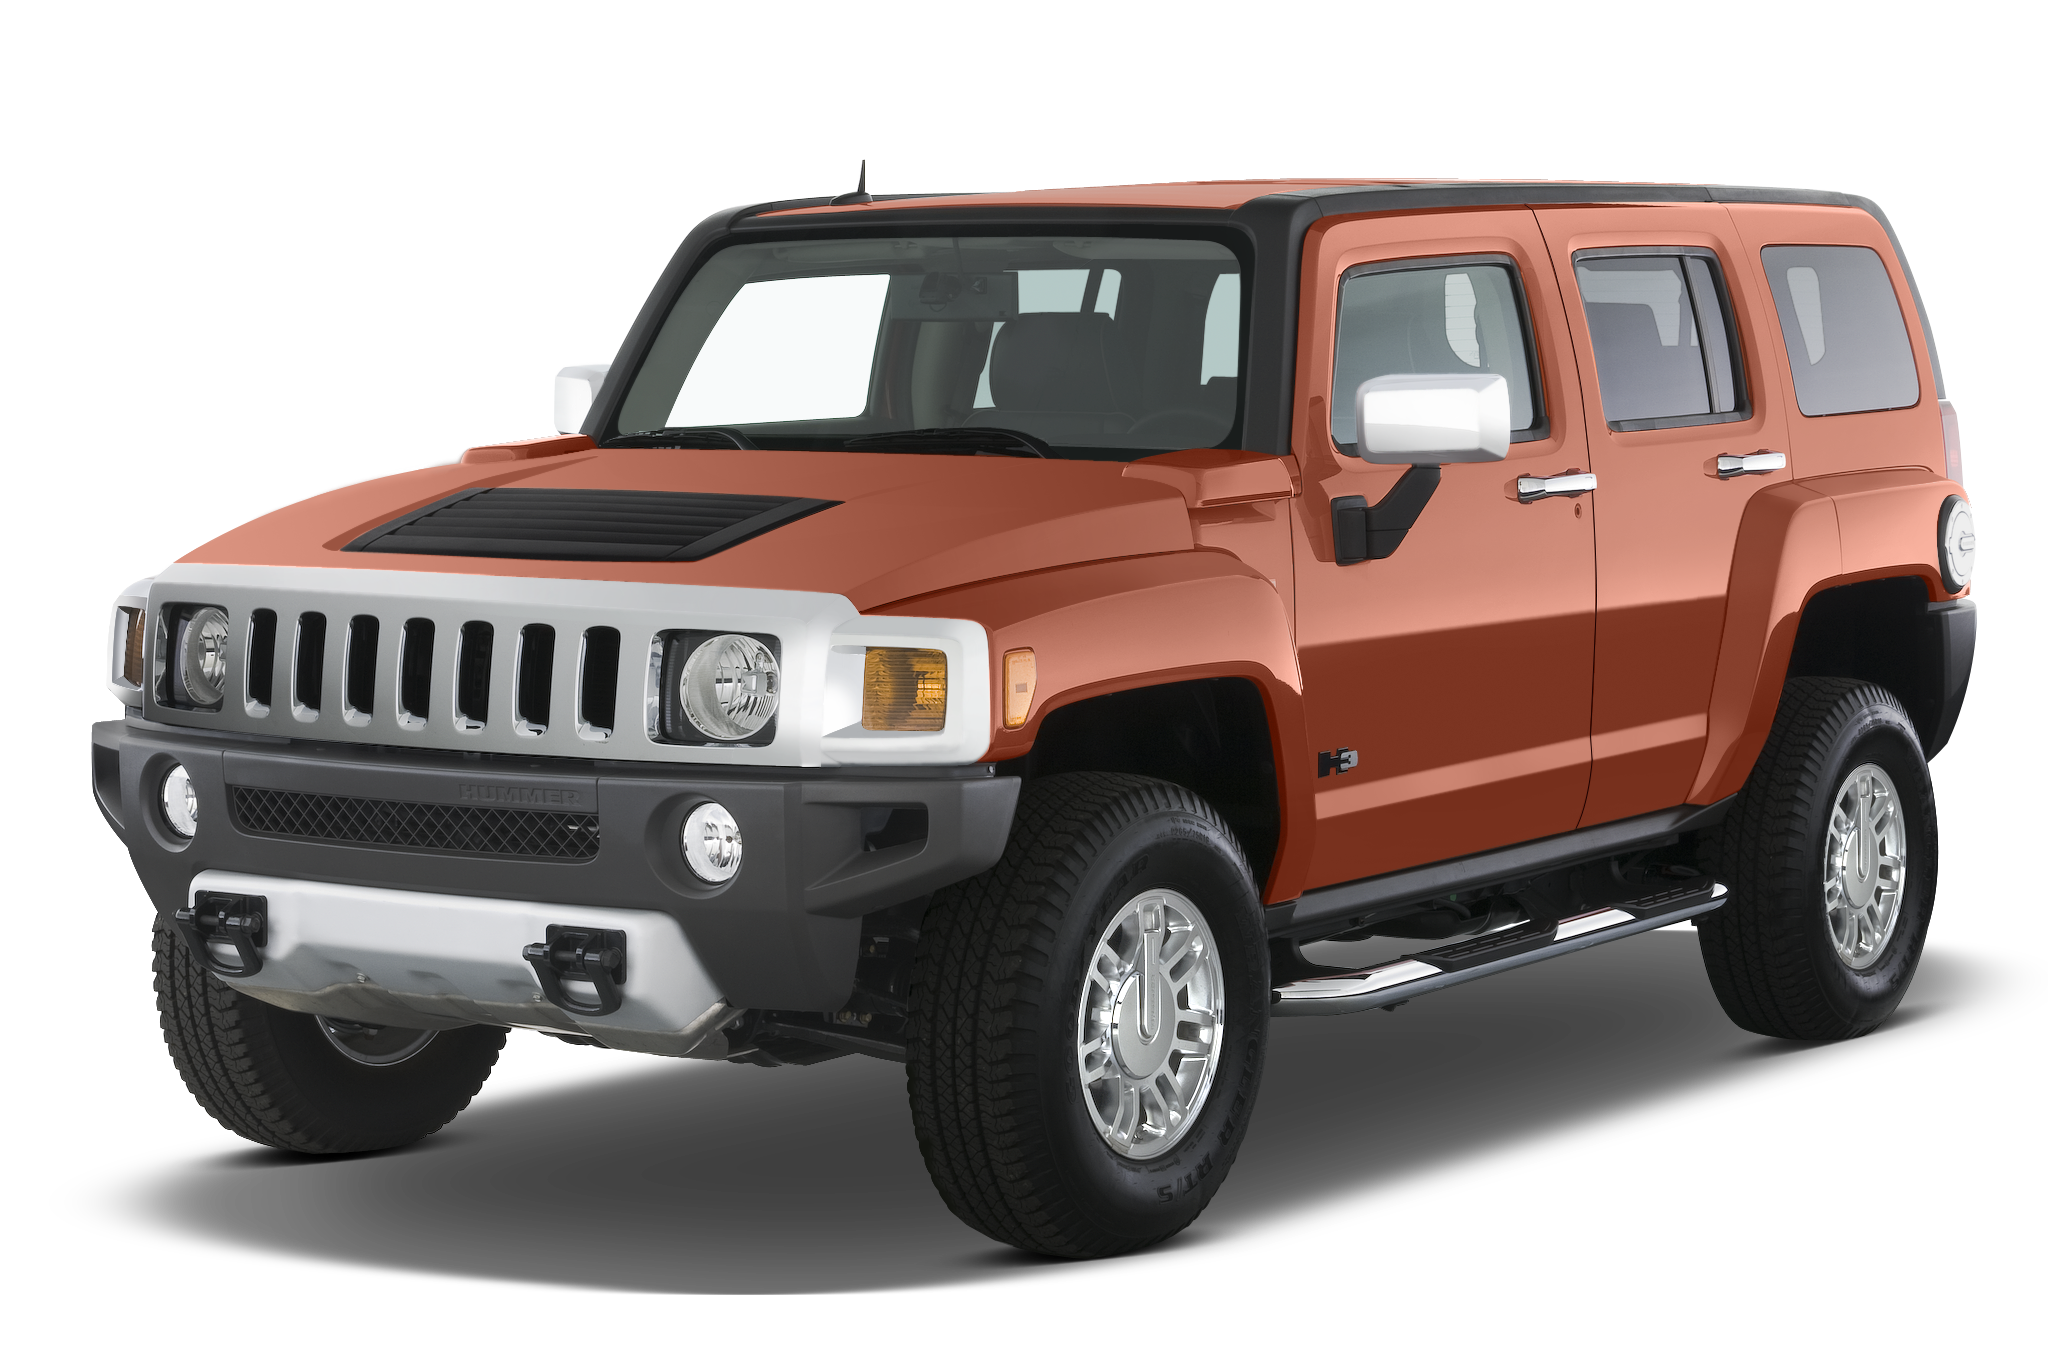 off road trip 2007 hummer h3 alpha and 2007 jeep wrangler unlimited latest news features. Black Bedroom Furniture Sets. Home Design Ideas